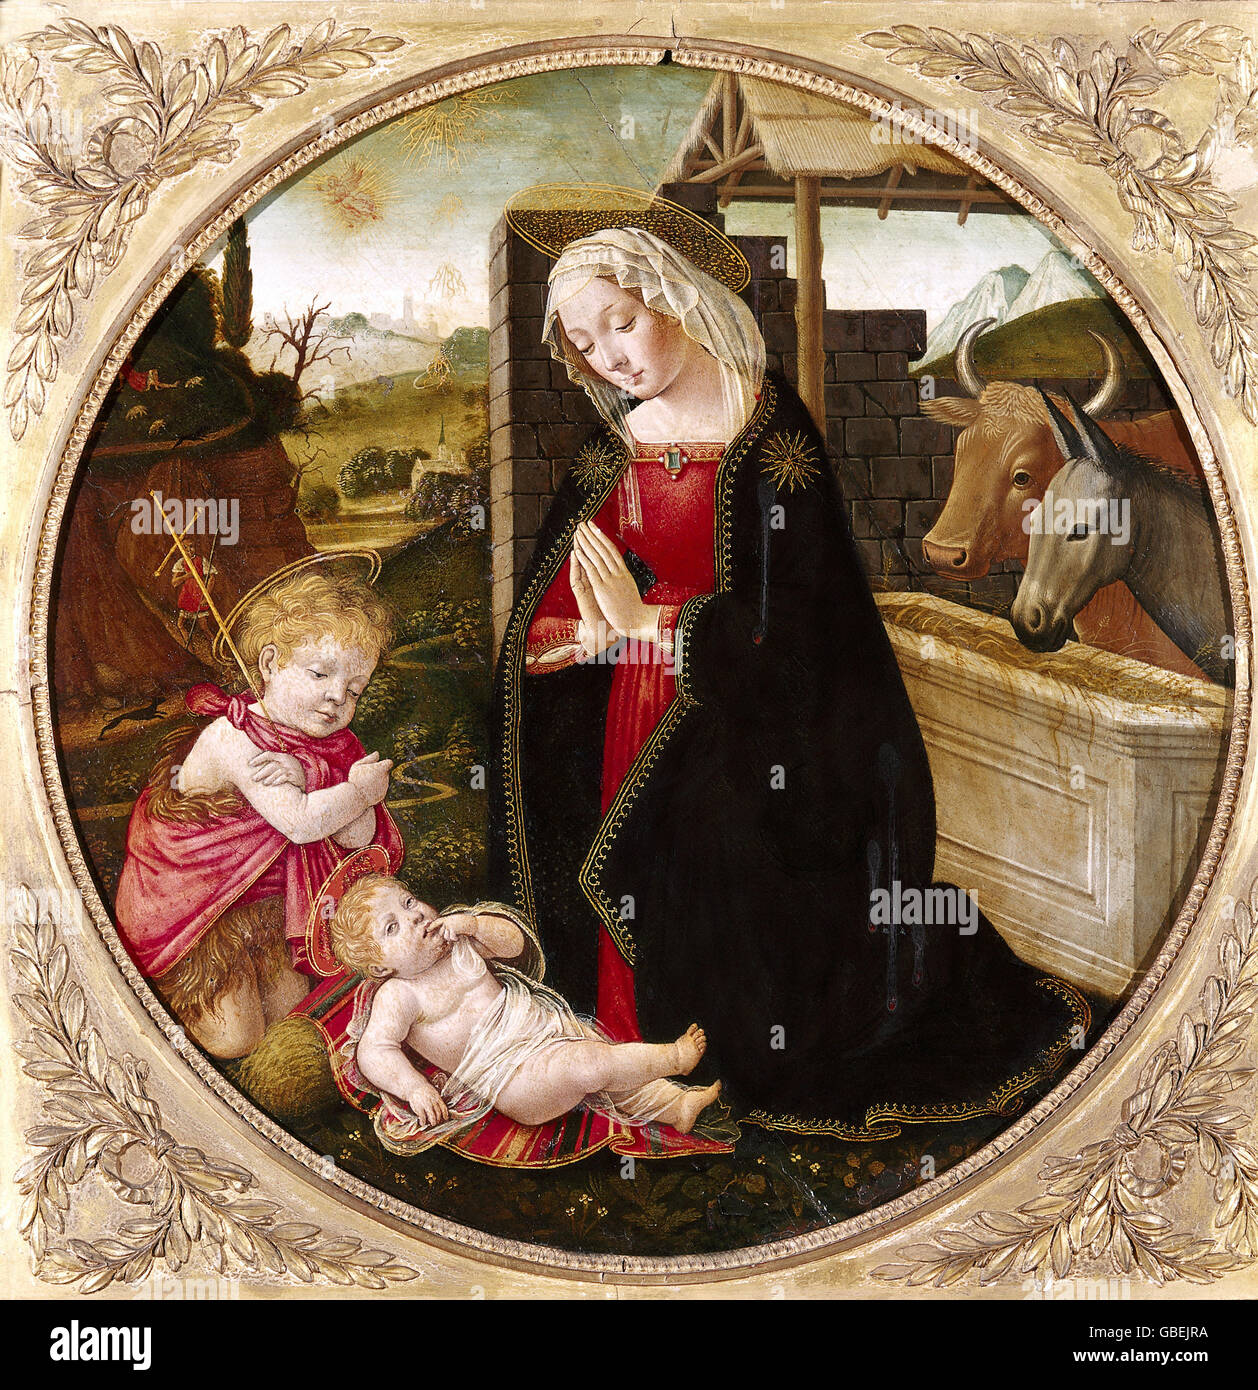 The Nativity by the Master of the female half-lengths, circa 1530 - 1540 - Stock Image